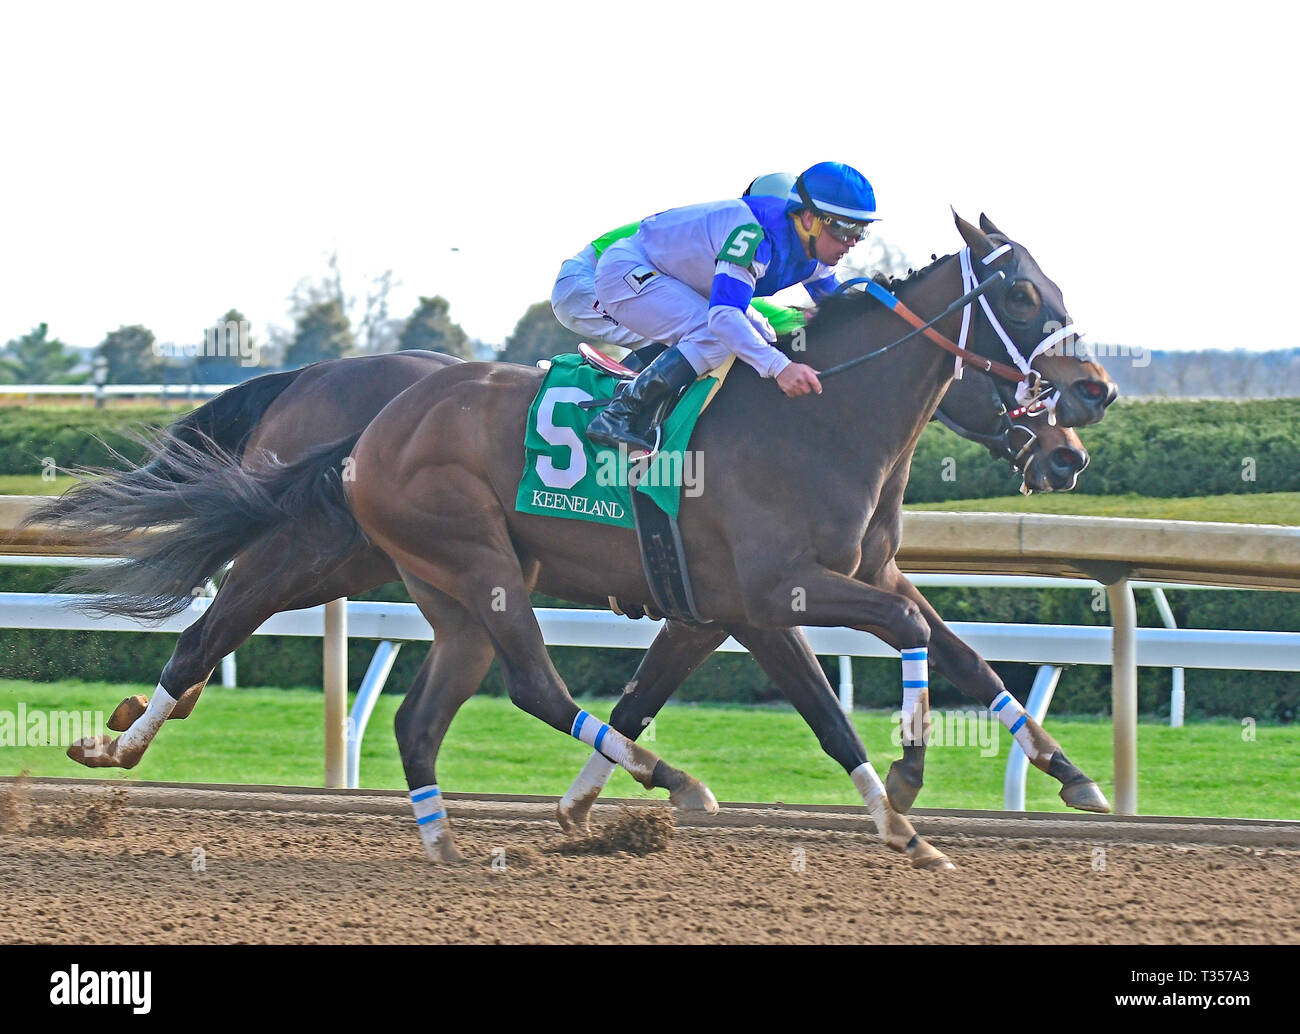 Lexington, Ky, KY, USA. 6th Apr, 2019. April 6, 2019 : Spiced Perfection, trained by Peter Miller, wins the 18th Running of The Madison (G1) at Keeneland on April 6, 2019 in Lexington, KY. Jessica Morgan/ESW/CSM/Alamy Live News - Stock Image